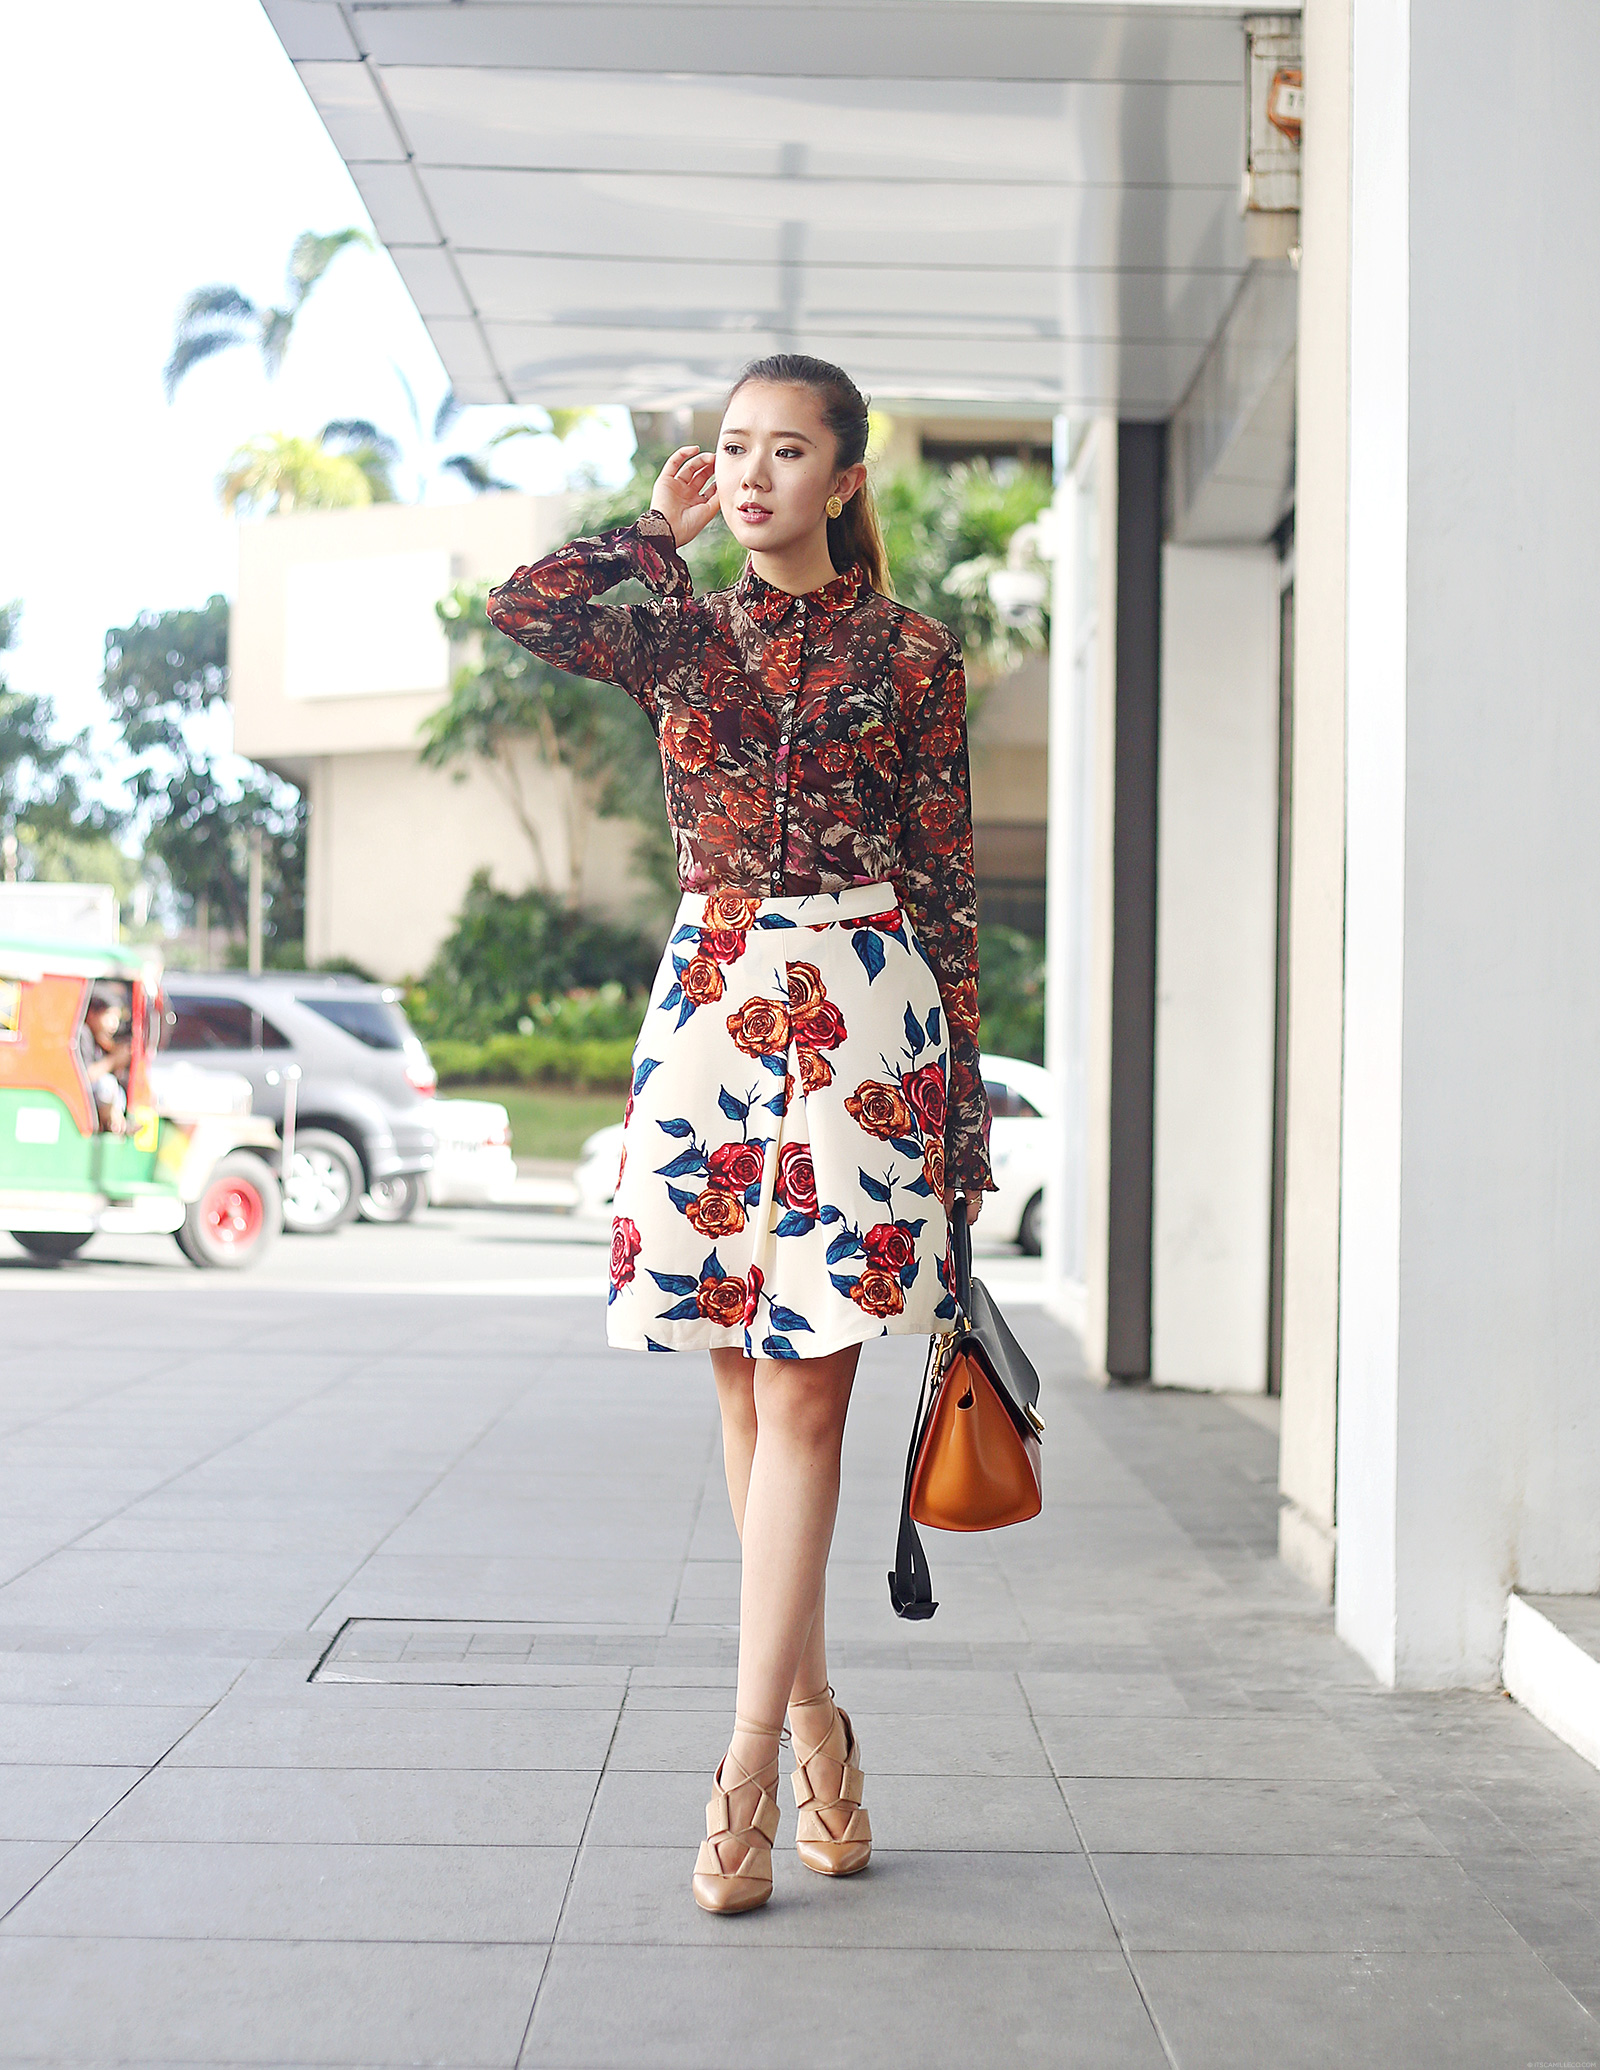 Floral Print On Print Featuring Marks & Spencer top, PB&J Skirt, Alexander Wang heels, Celine trapeze | www.itscamilleco.com